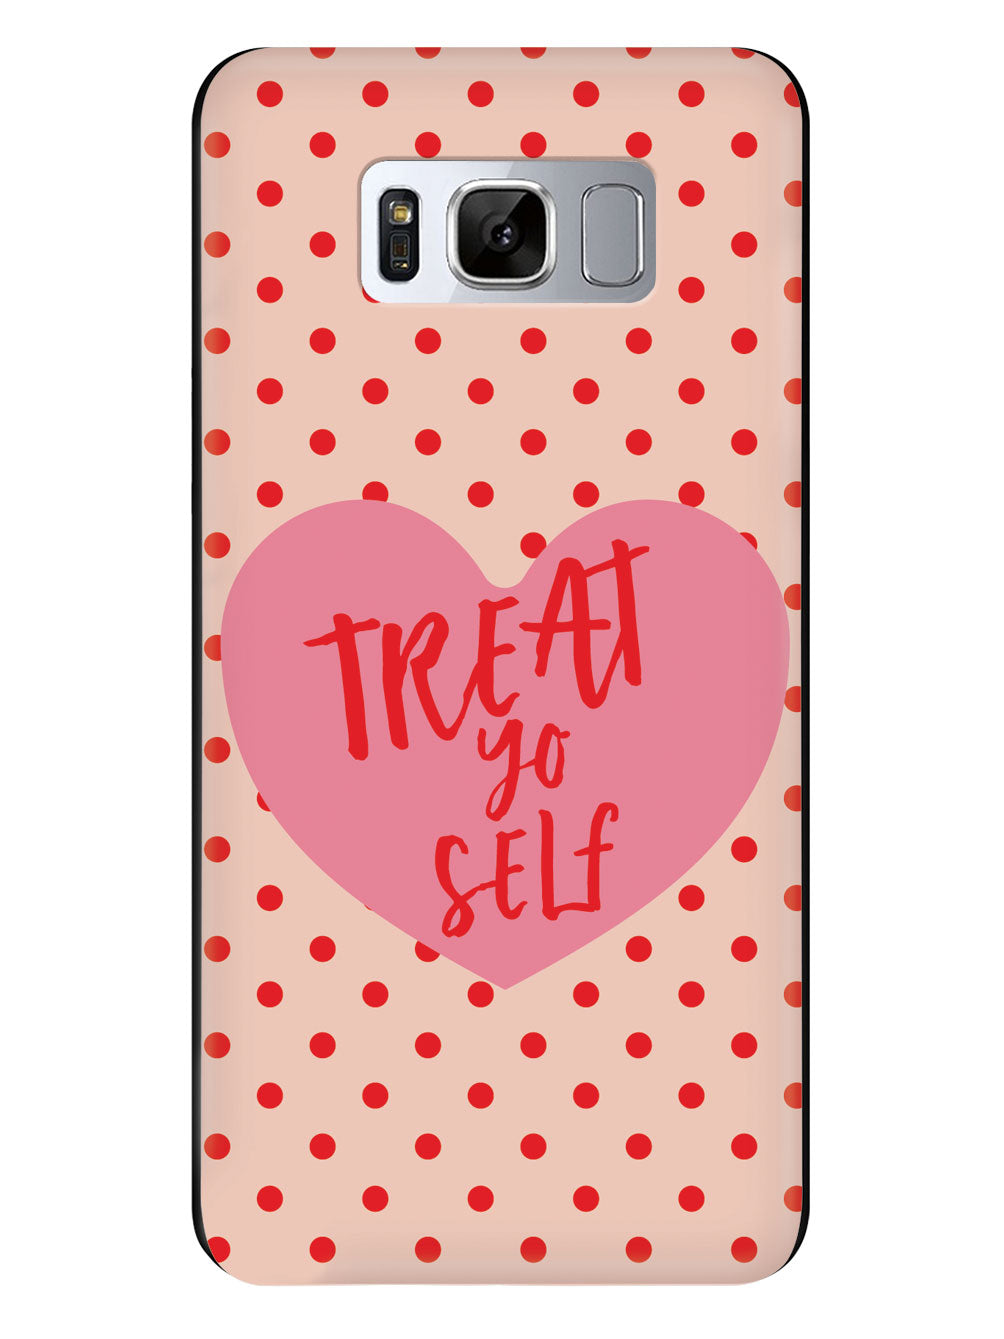 Treat Yo Self - Black Case